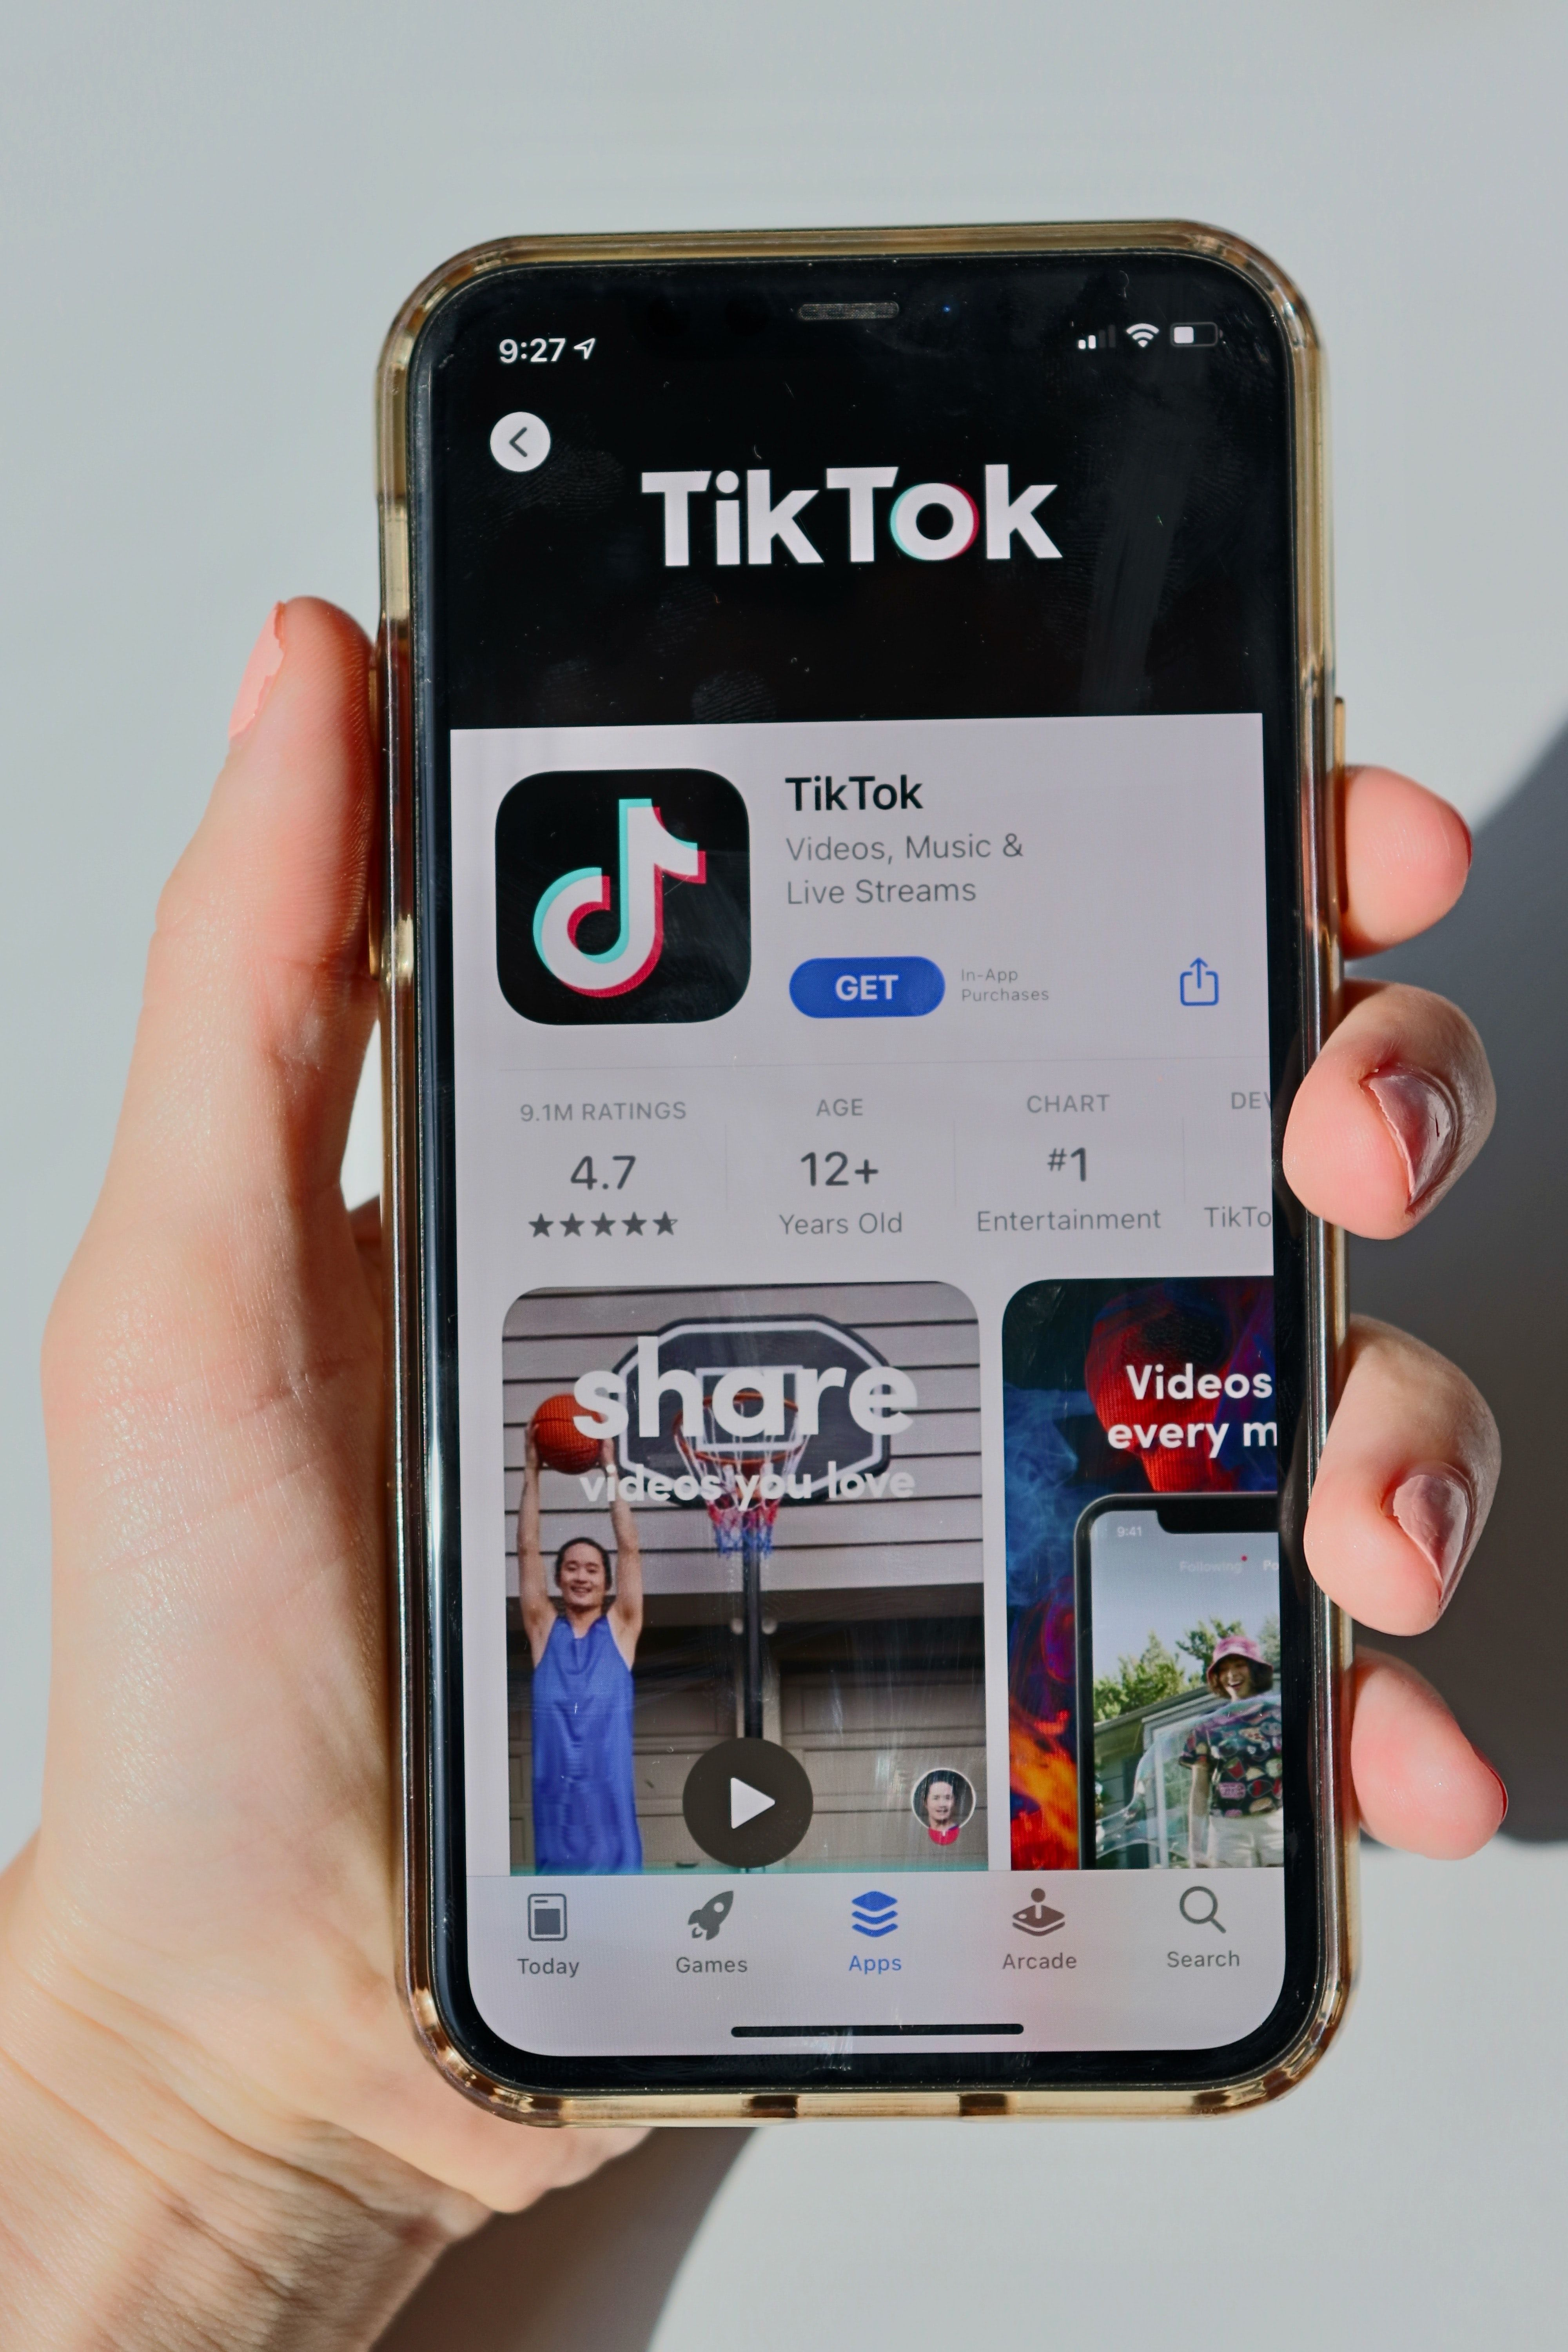 Keep up with Tik Tok trends and go viral